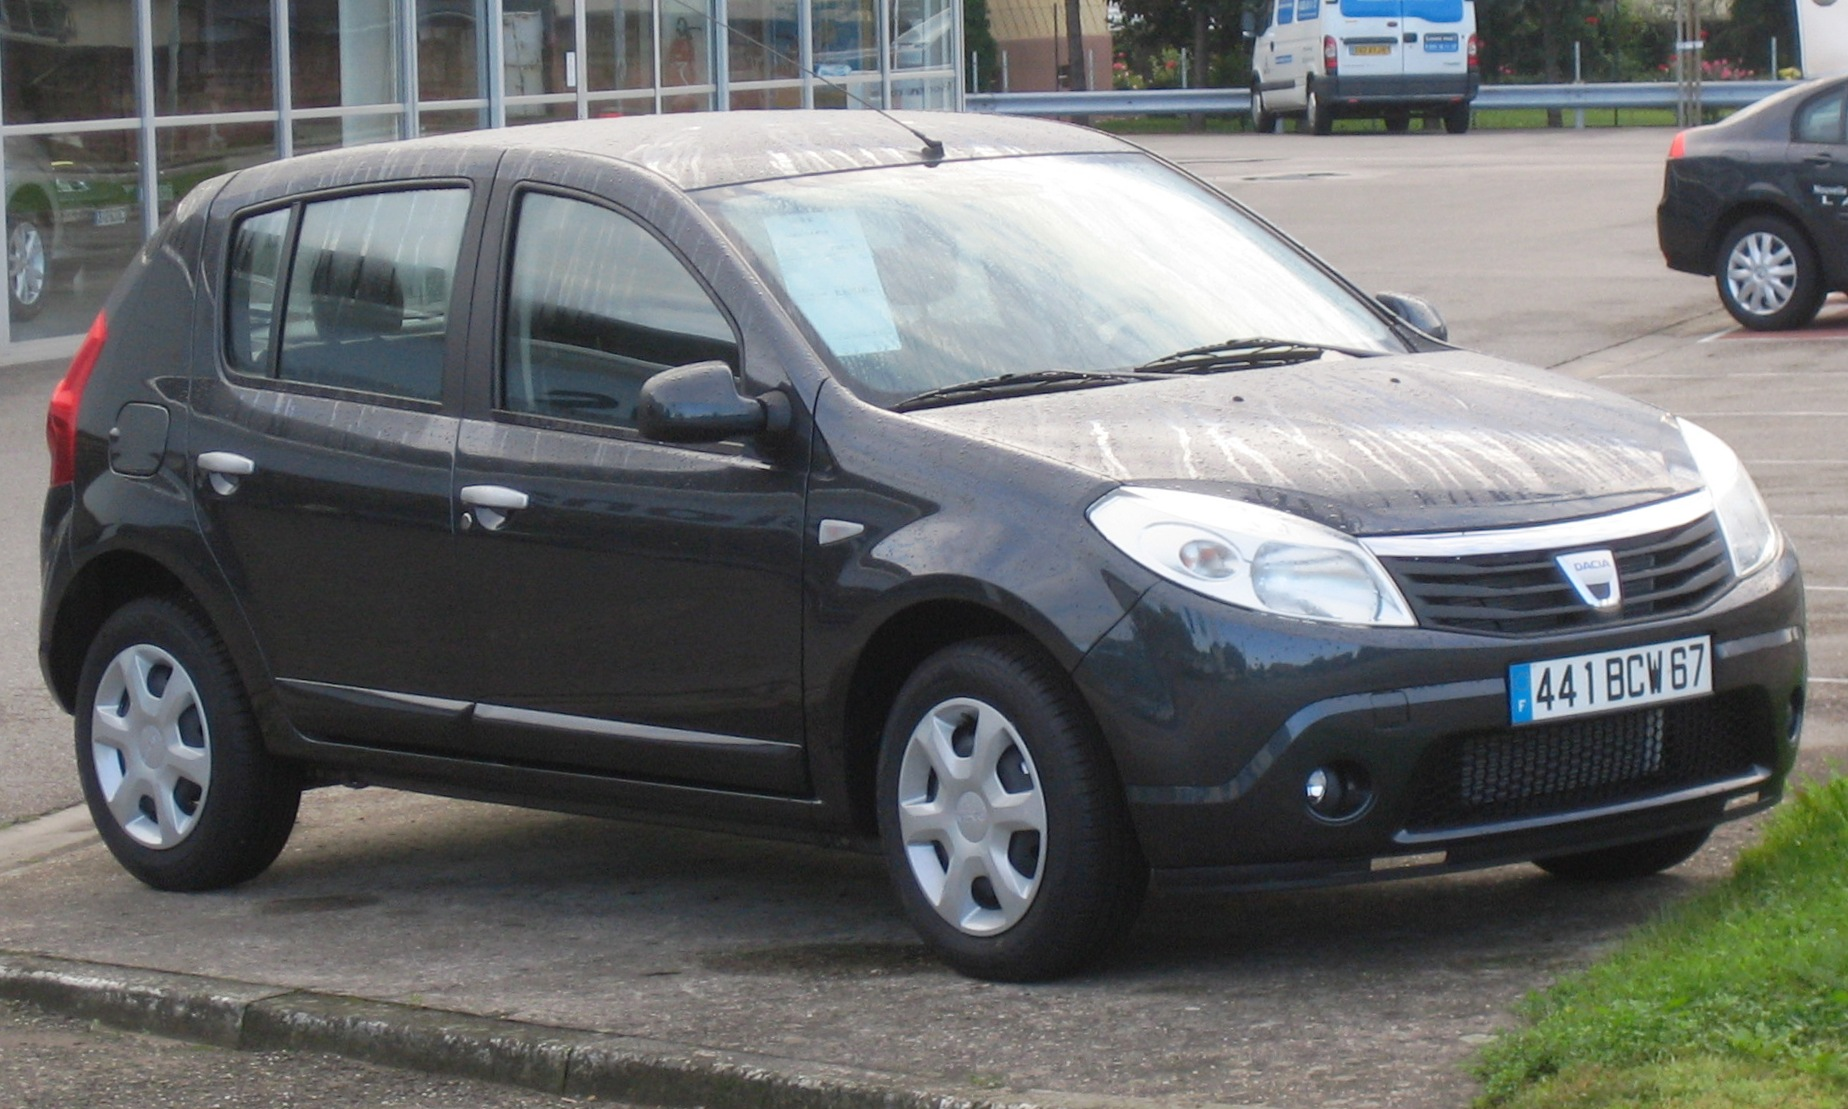 dacia sandero 2008 review amazing pictures and images look at the car. Black Bedroom Furniture Sets. Home Design Ideas